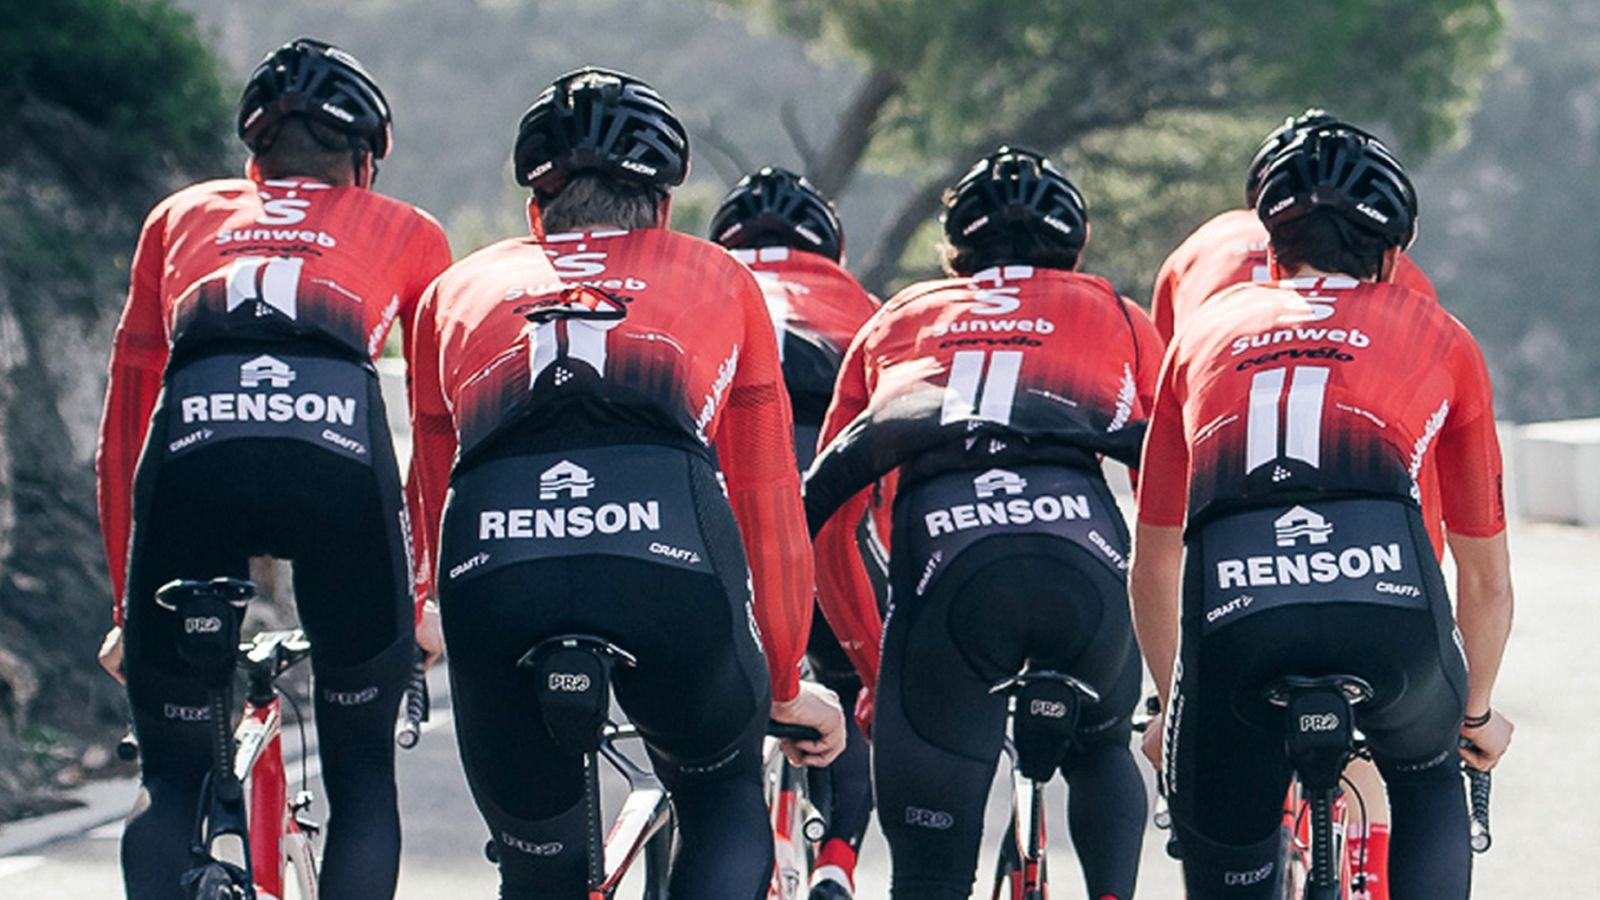 Photo credit: Team Sunweb